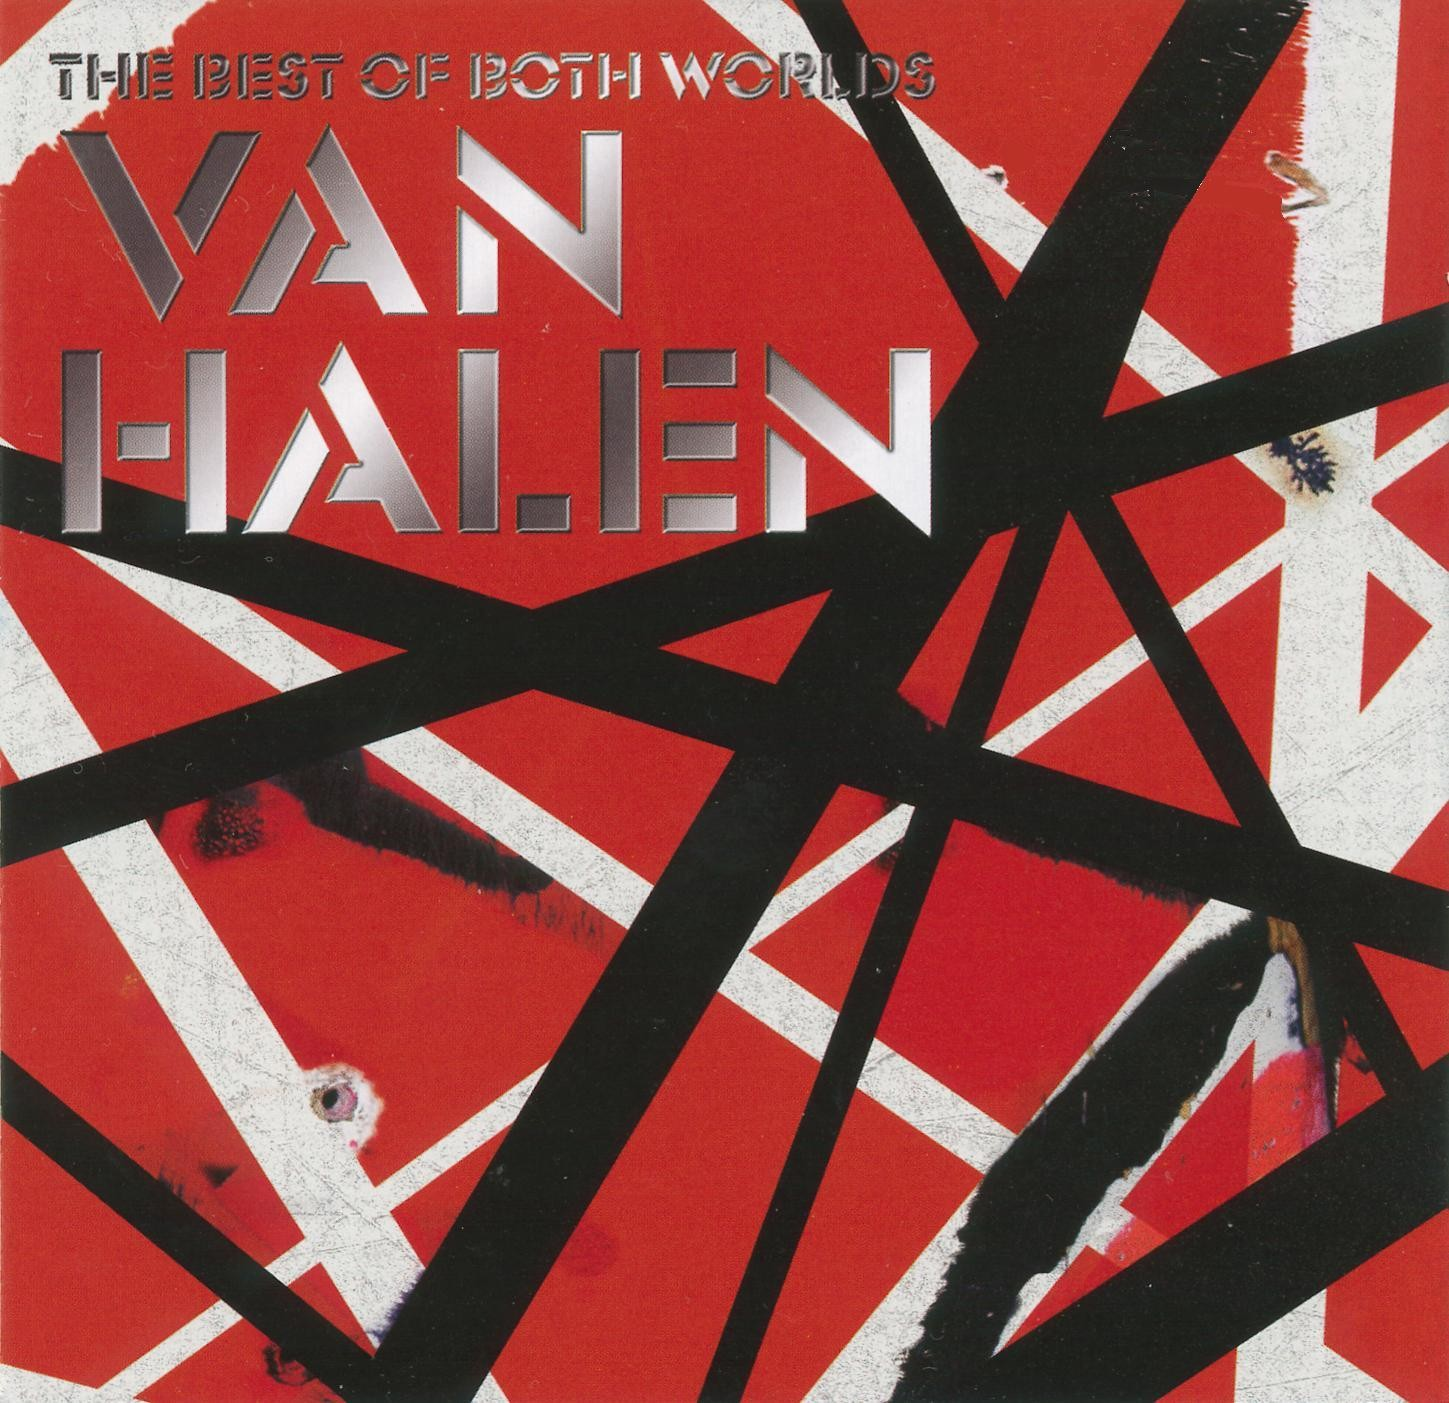 Van Halen – The Best Of, Volume 1 (Japan, Limited Release) (2010)